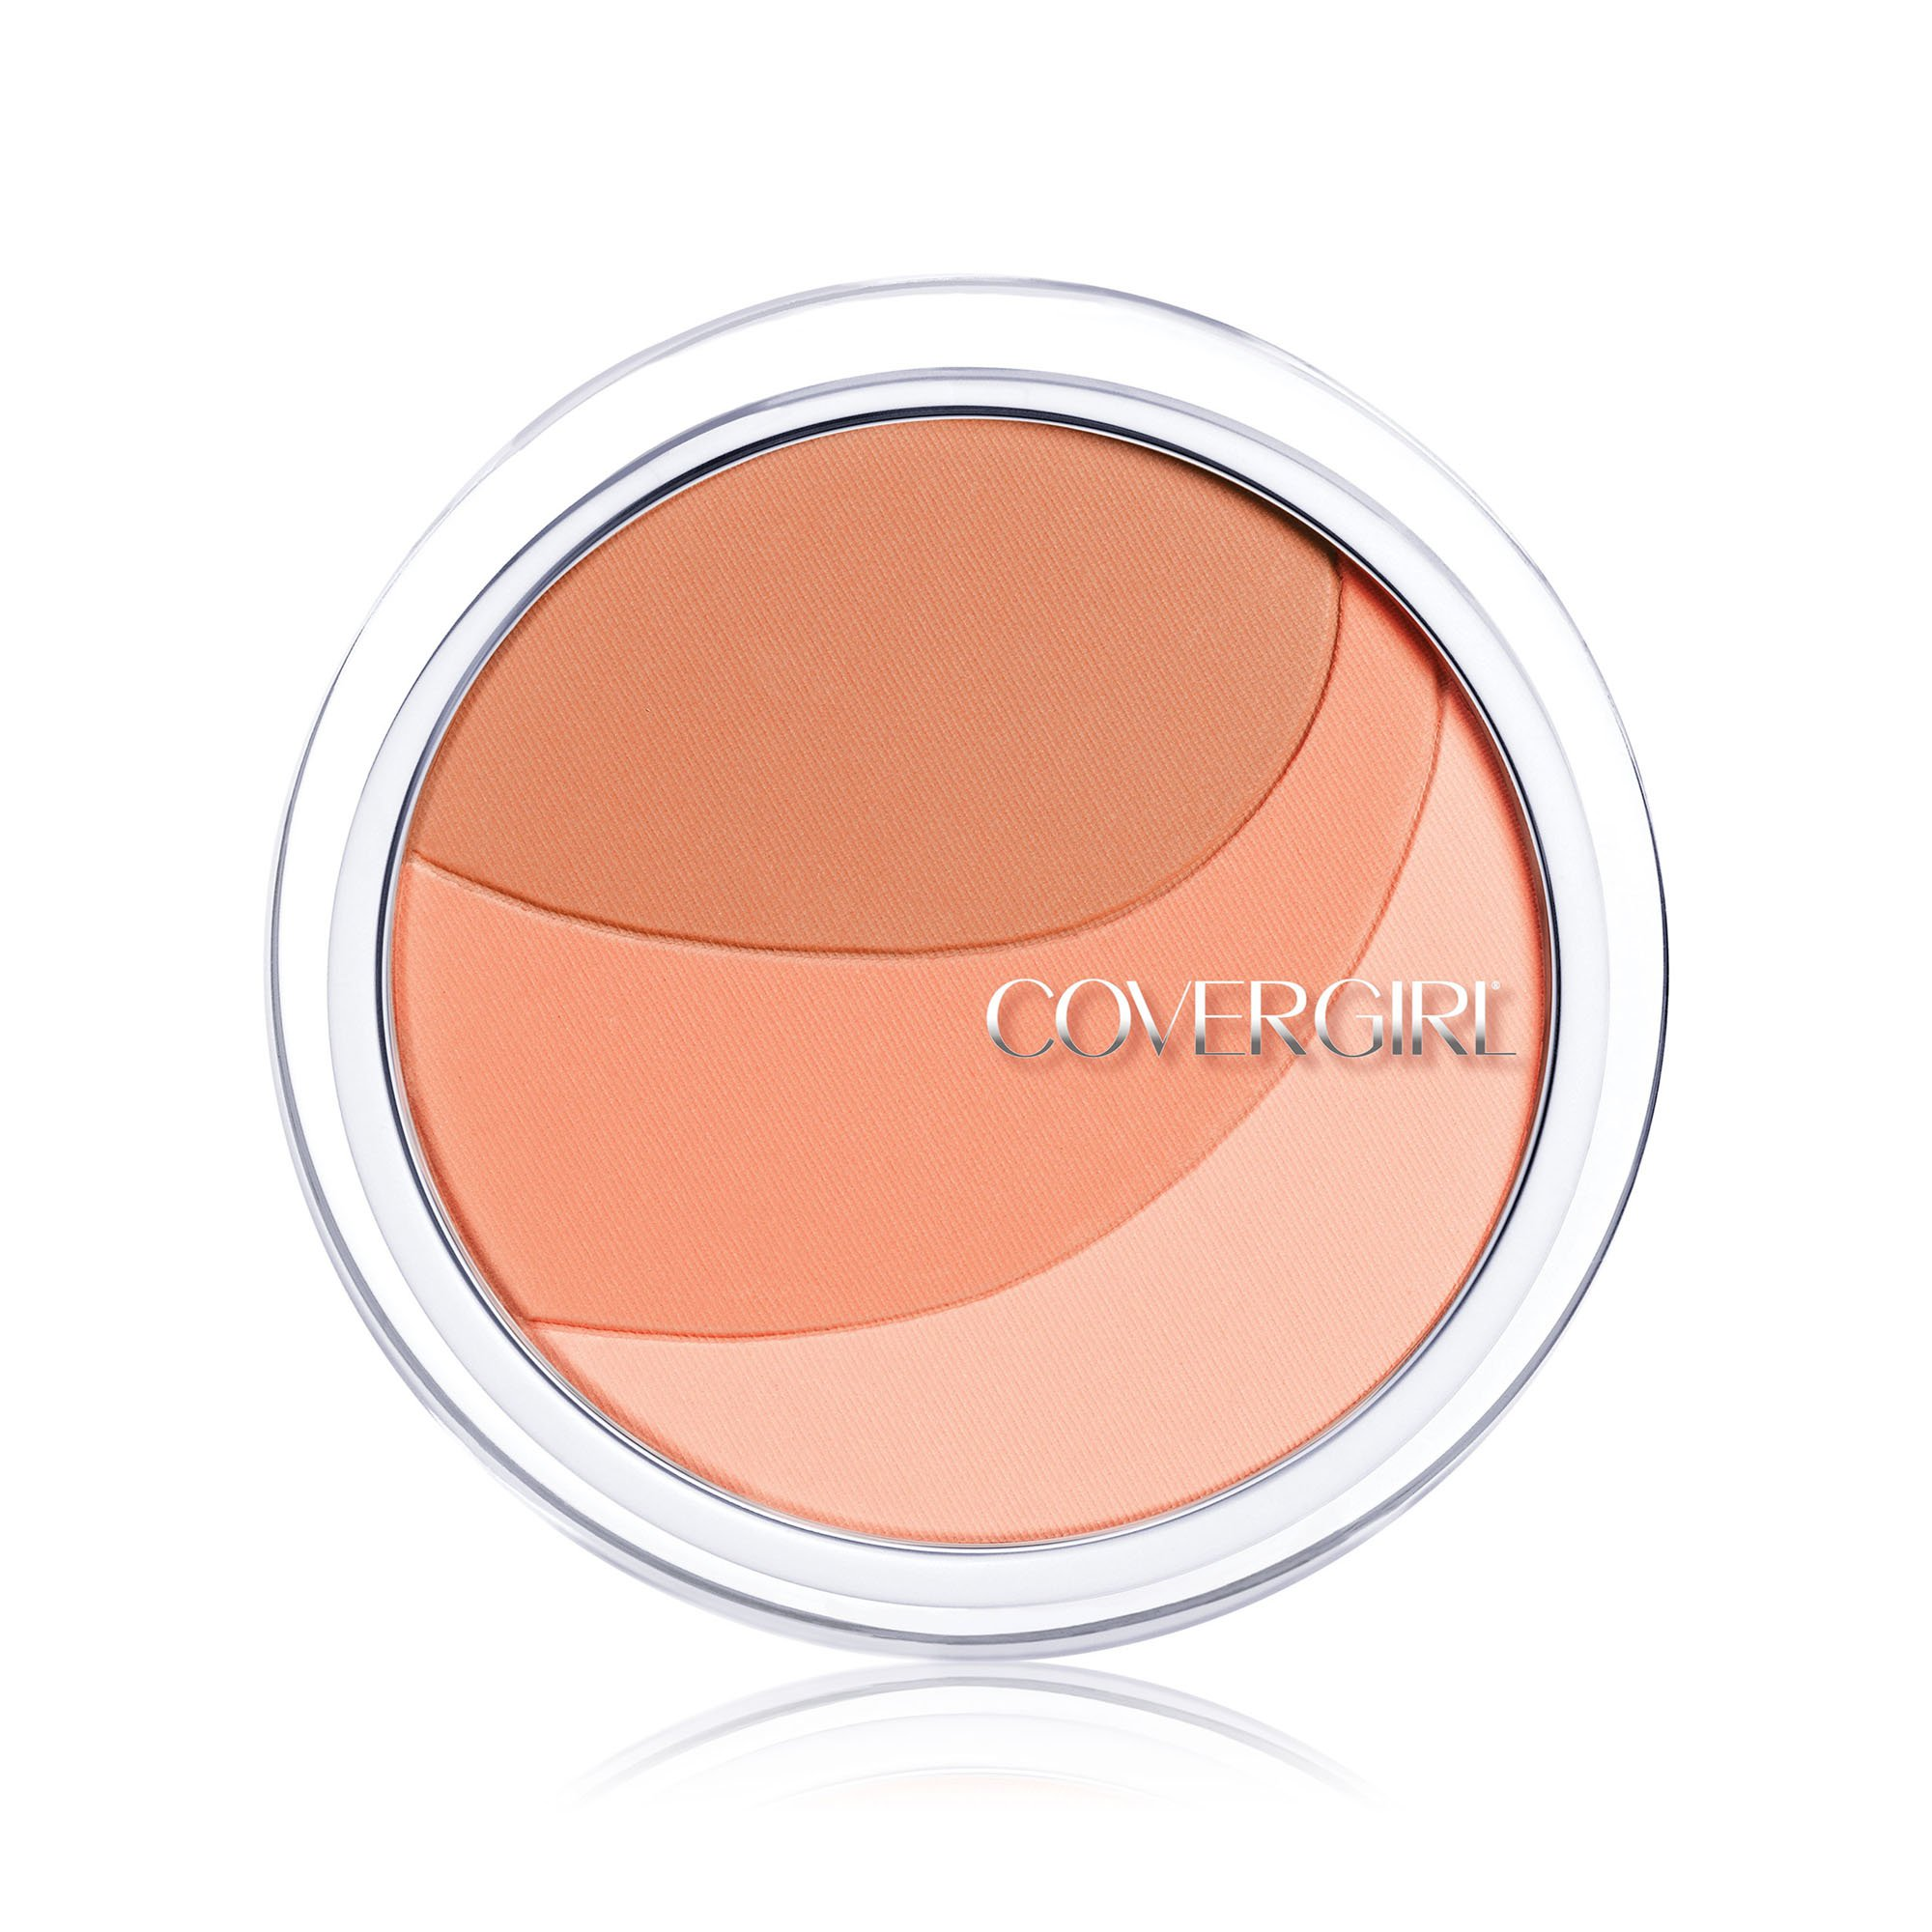 COVERGIRL Clean Glow Lightweight Powder Blush Peaches 110, .42 oz (packaging may vary)